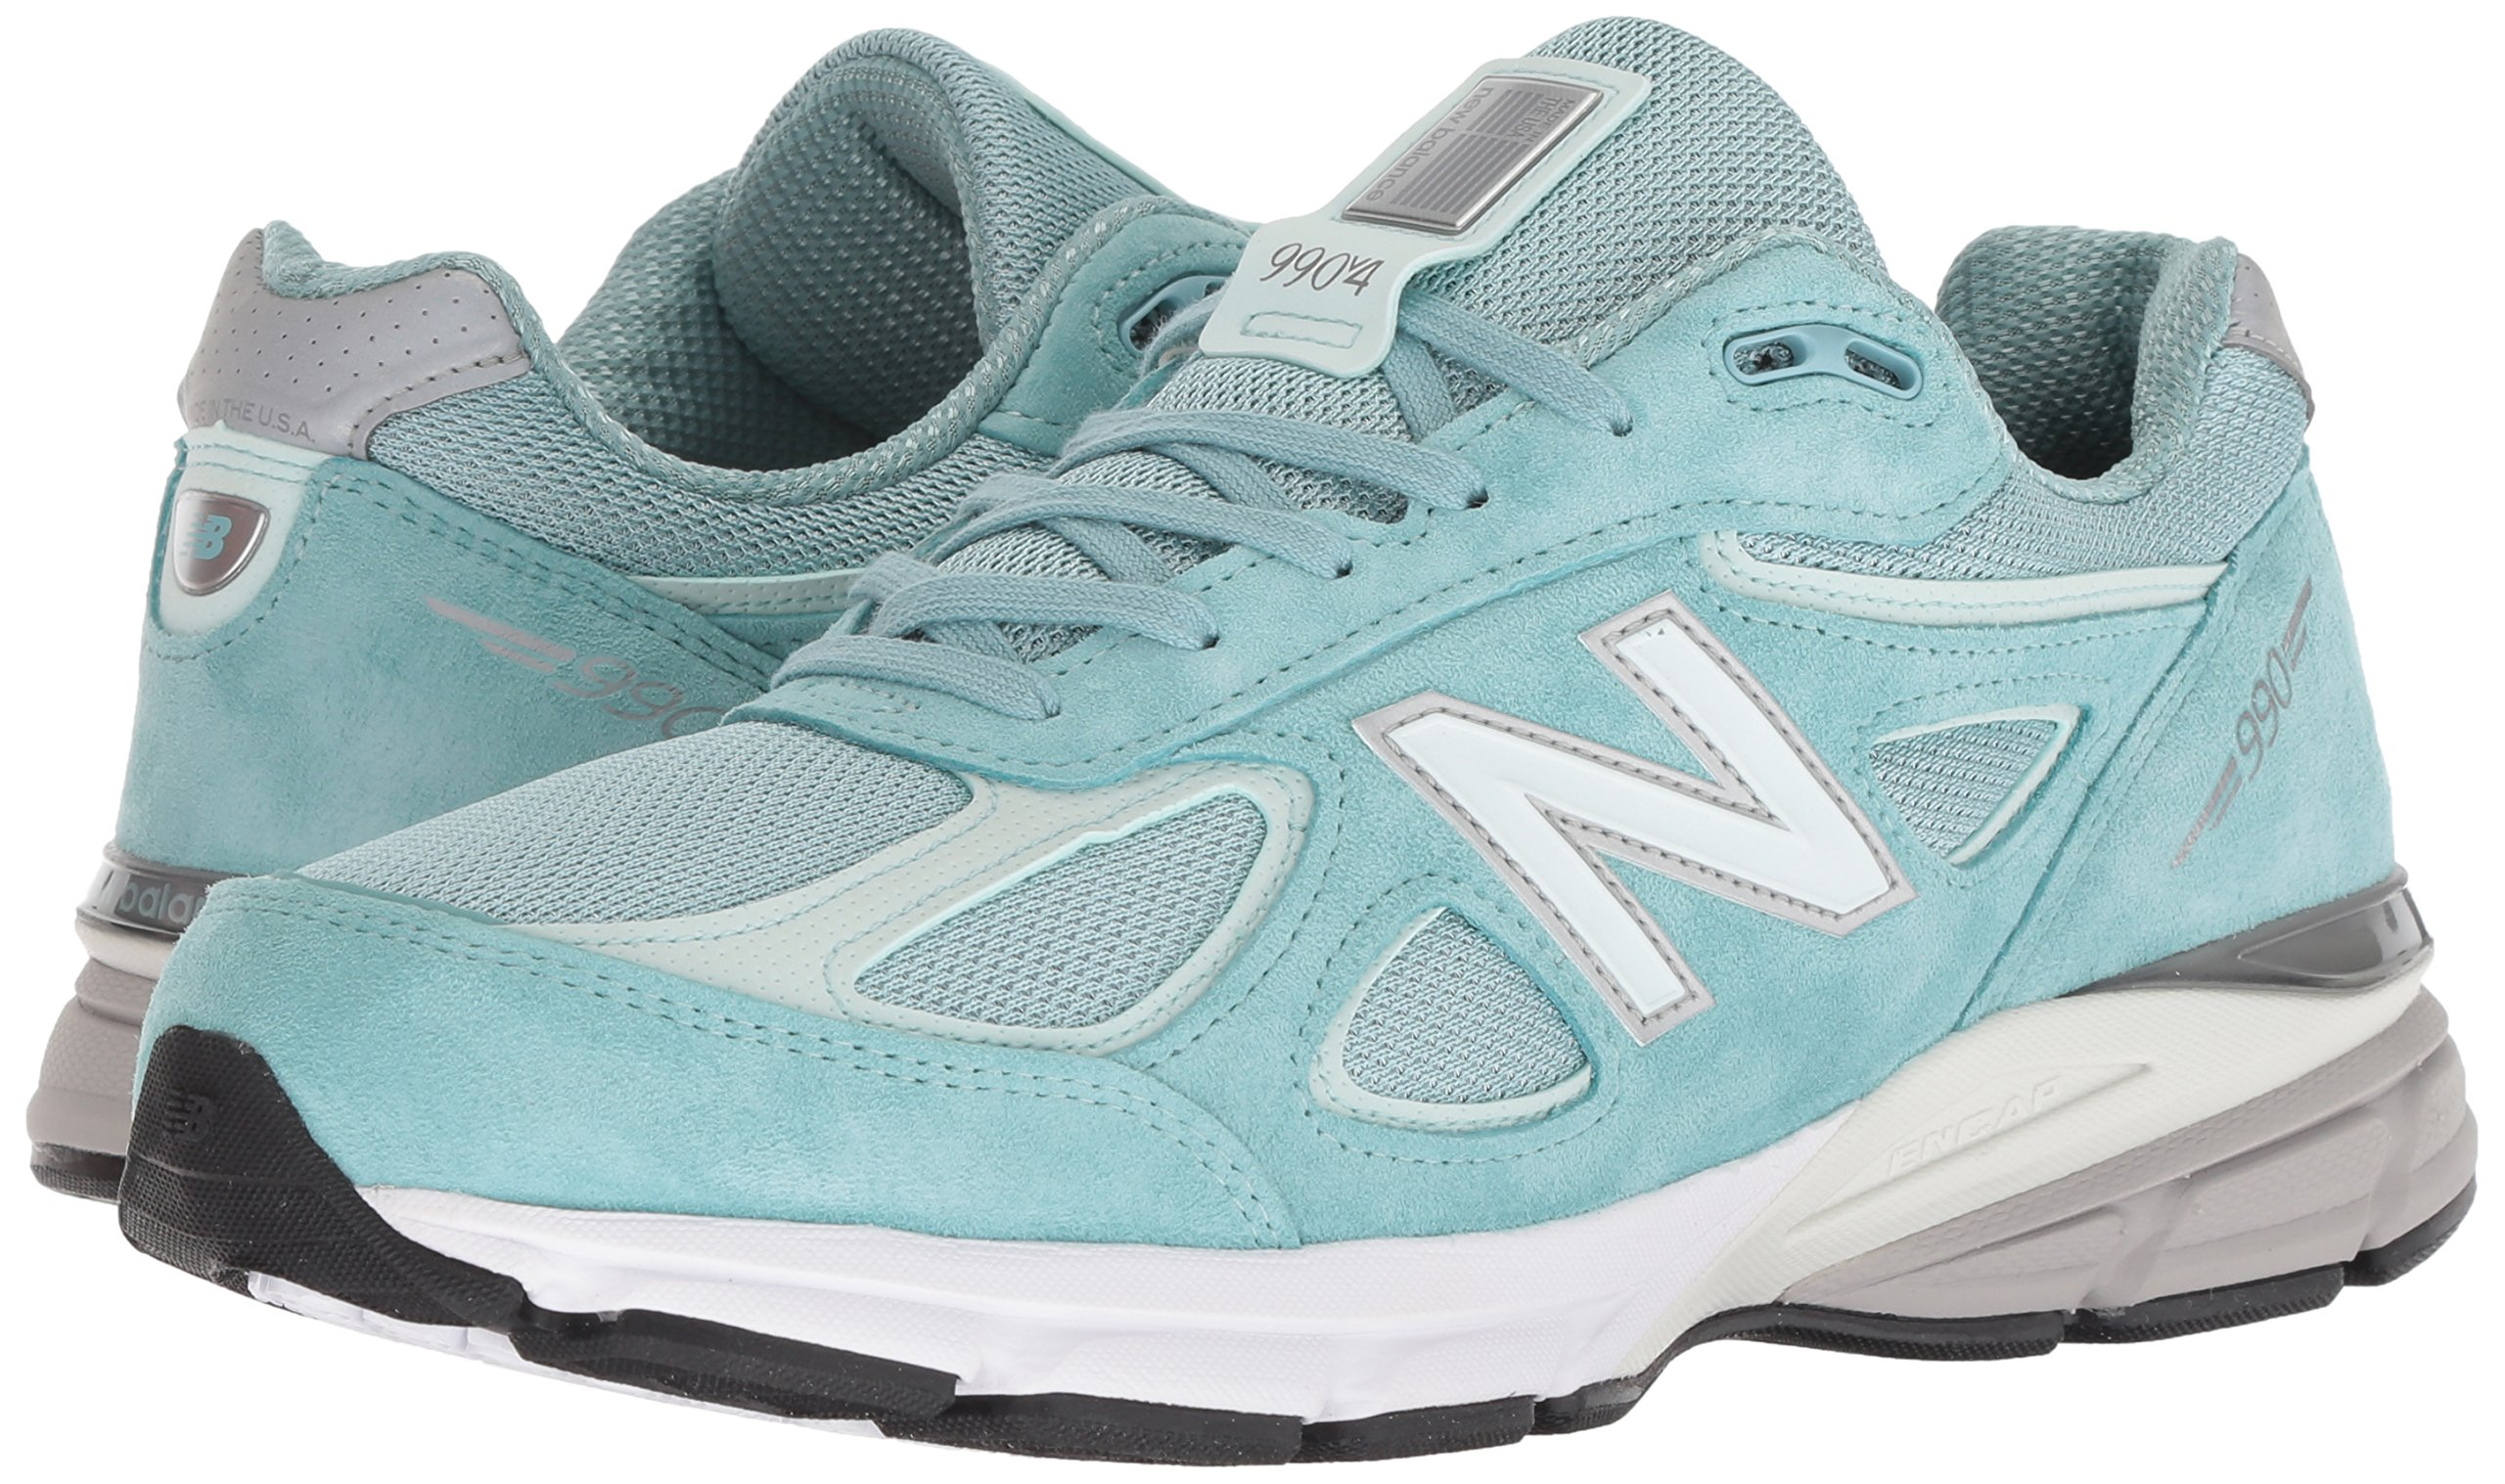 New Balance Men's 990v4, Green/White, 7 D US by New Balance (Image #6)